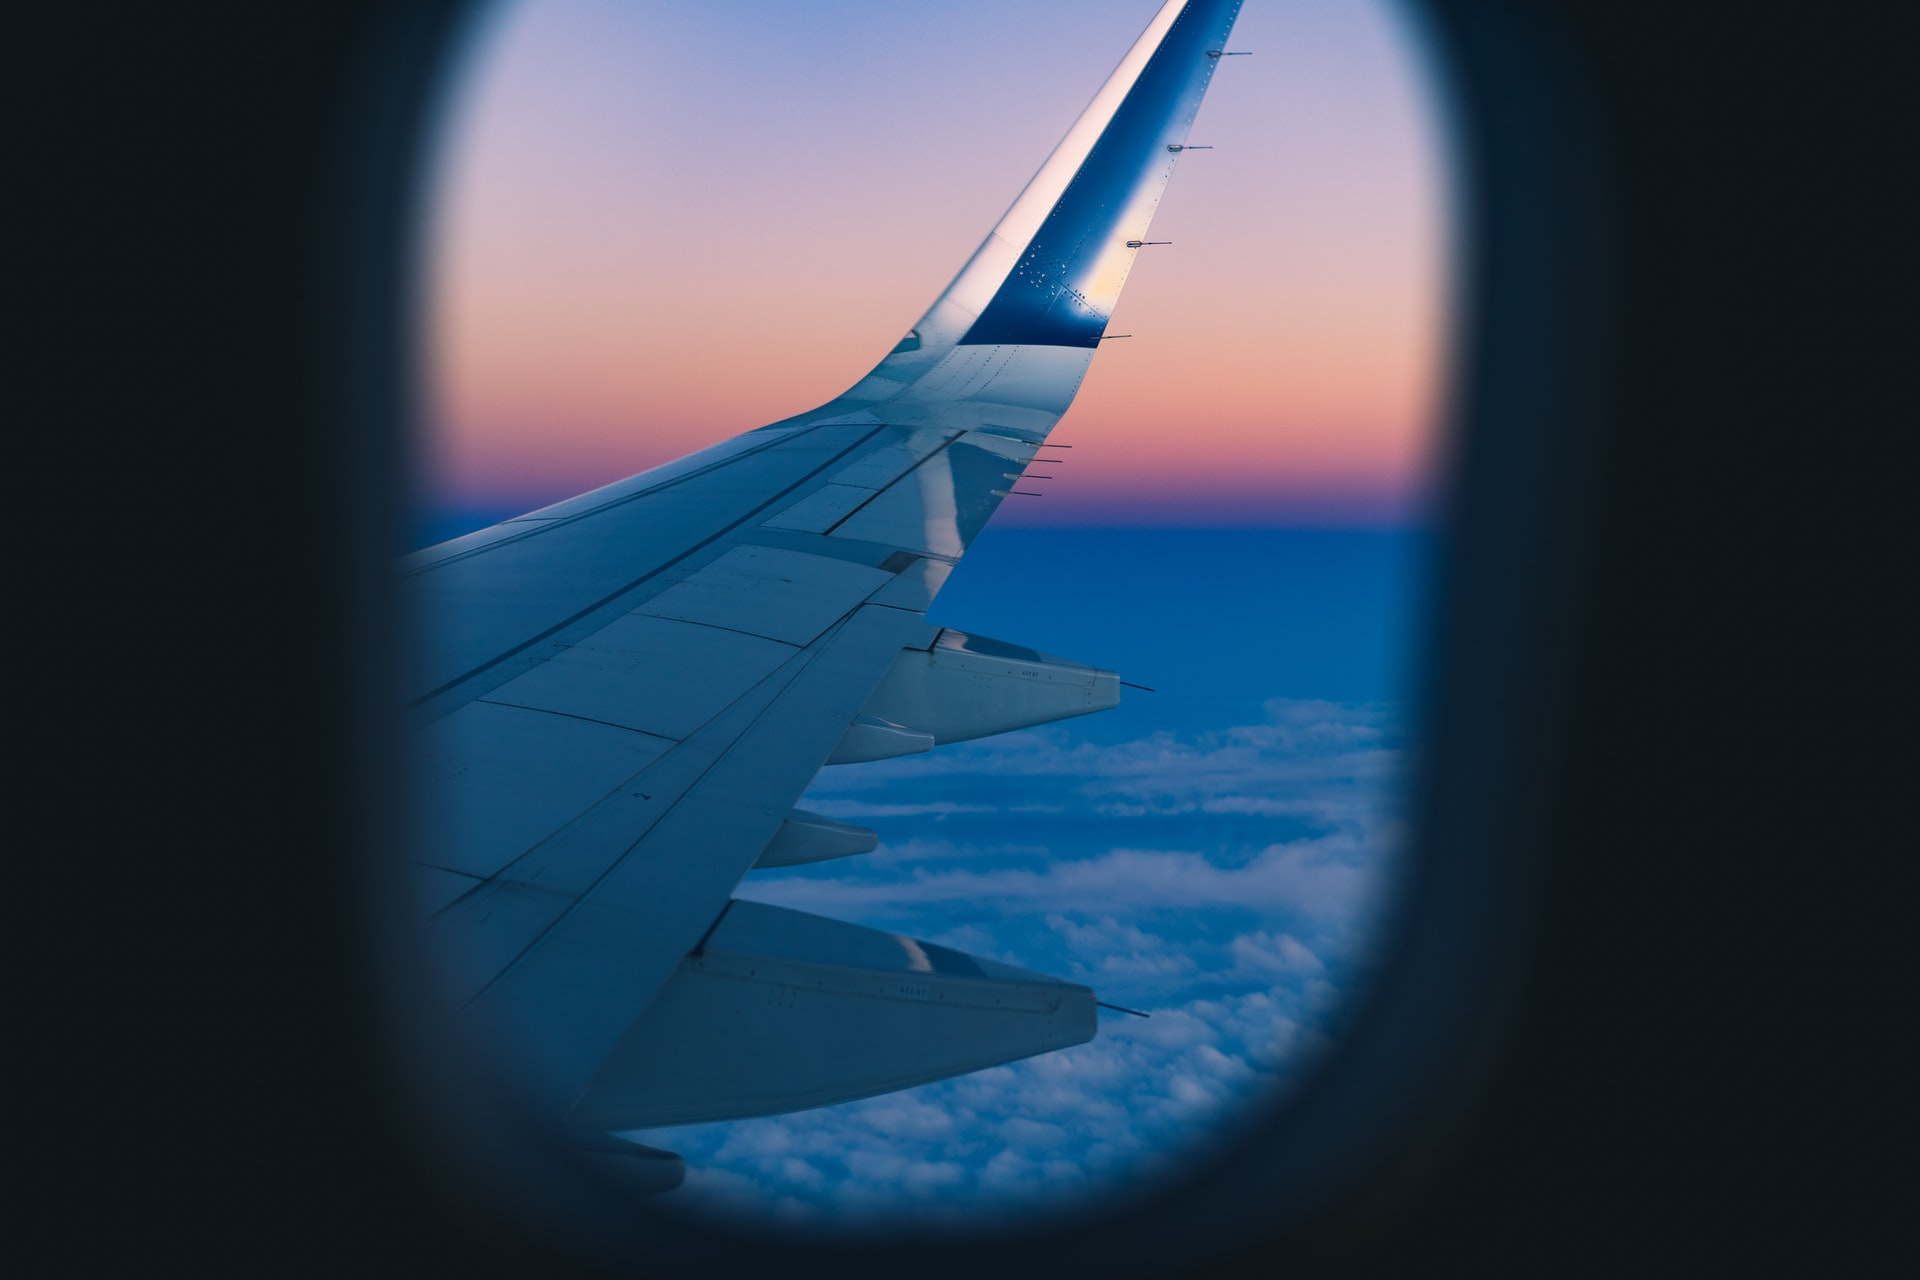 View from an airplane window at sunrise of the plane's wing. Photo courtesy of Dan Gold on Unsplash.